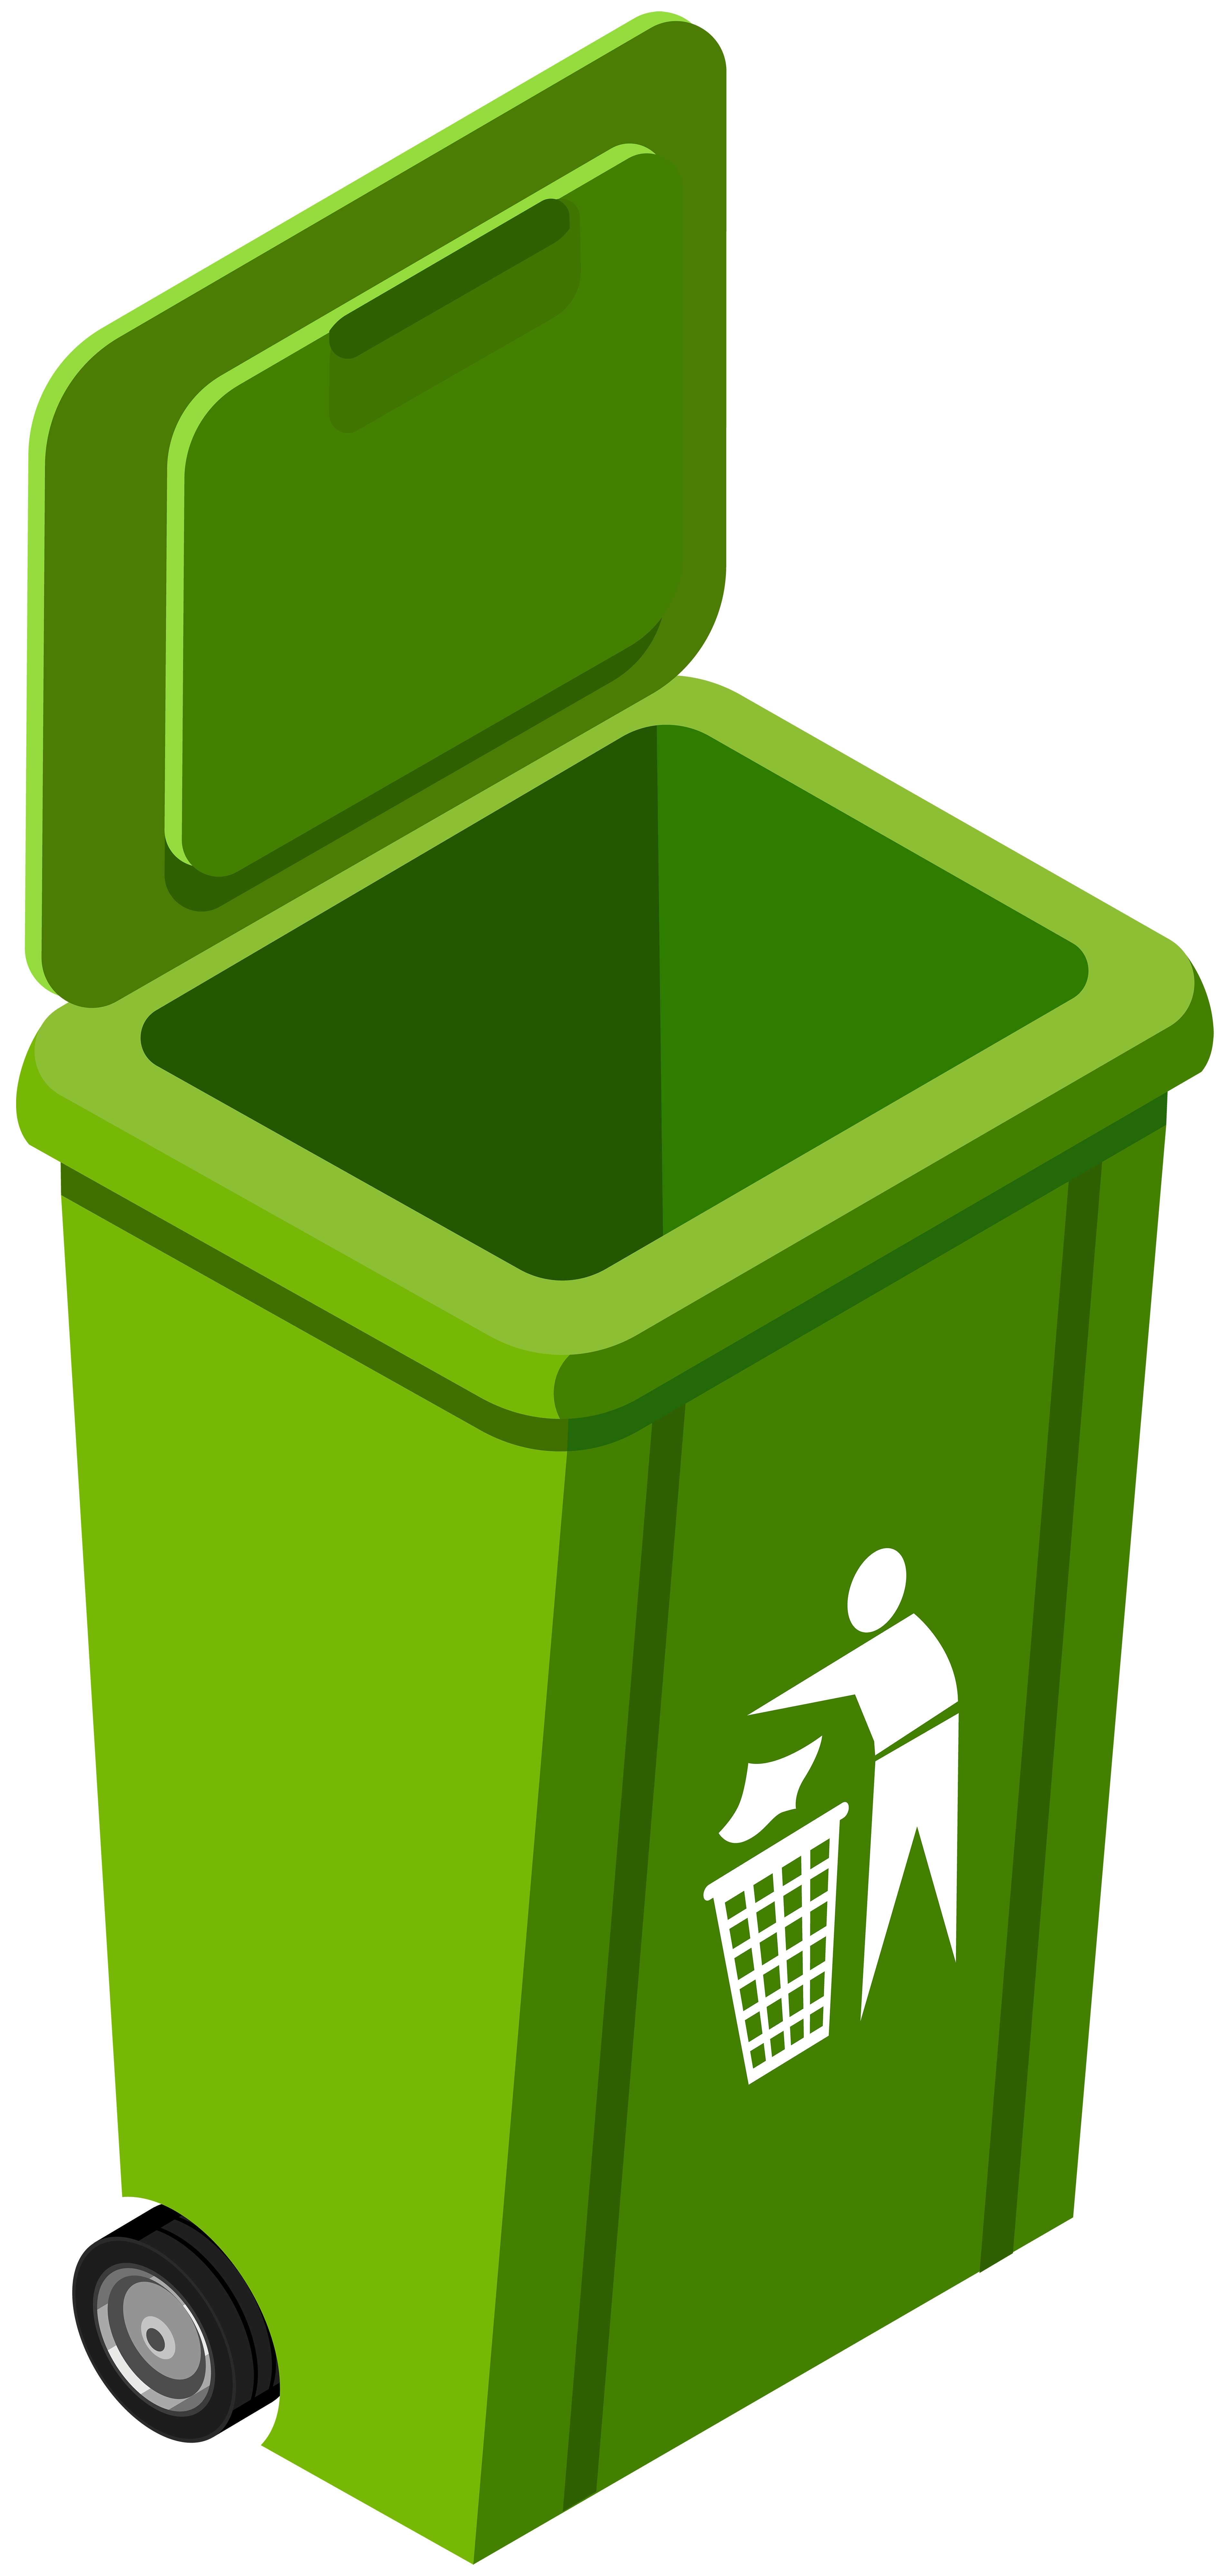 Trashcan basketball clipart clip art freeuse download Green Trash Can PNG Clip Art Image - Best WEB Clipart clip art freeuse download